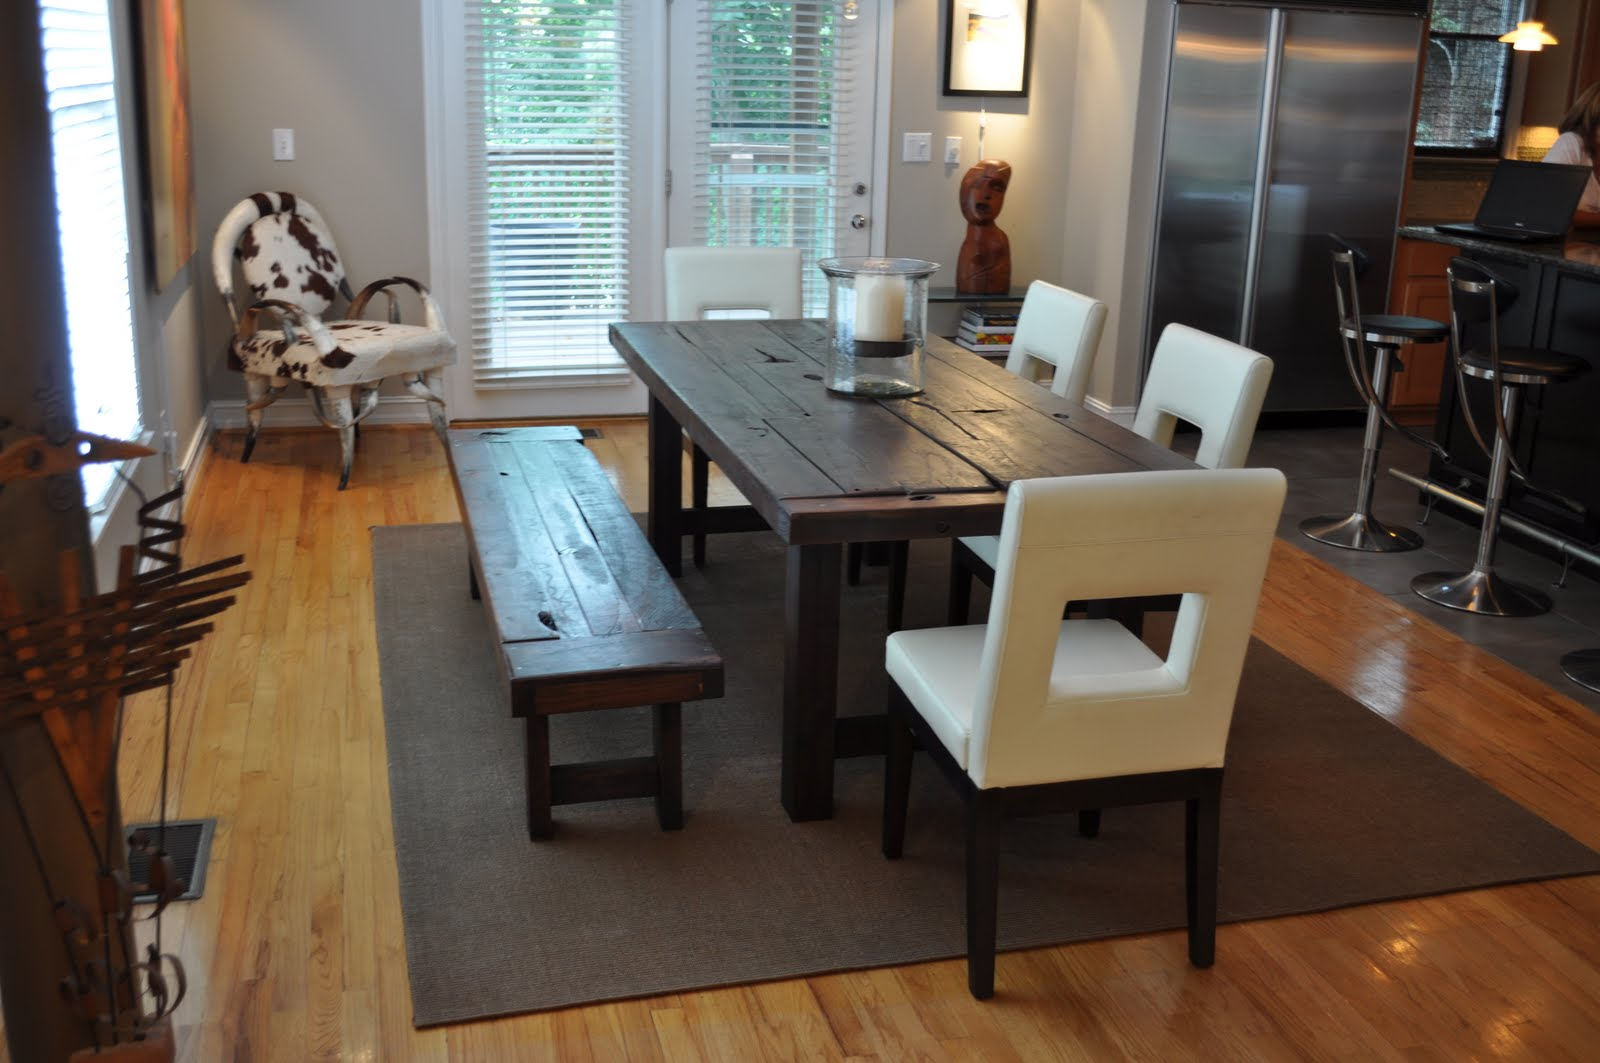 Superbe U201cThe Claytonu201d Custom, Handmade Dining Table With Extra Distressing Features  $1700